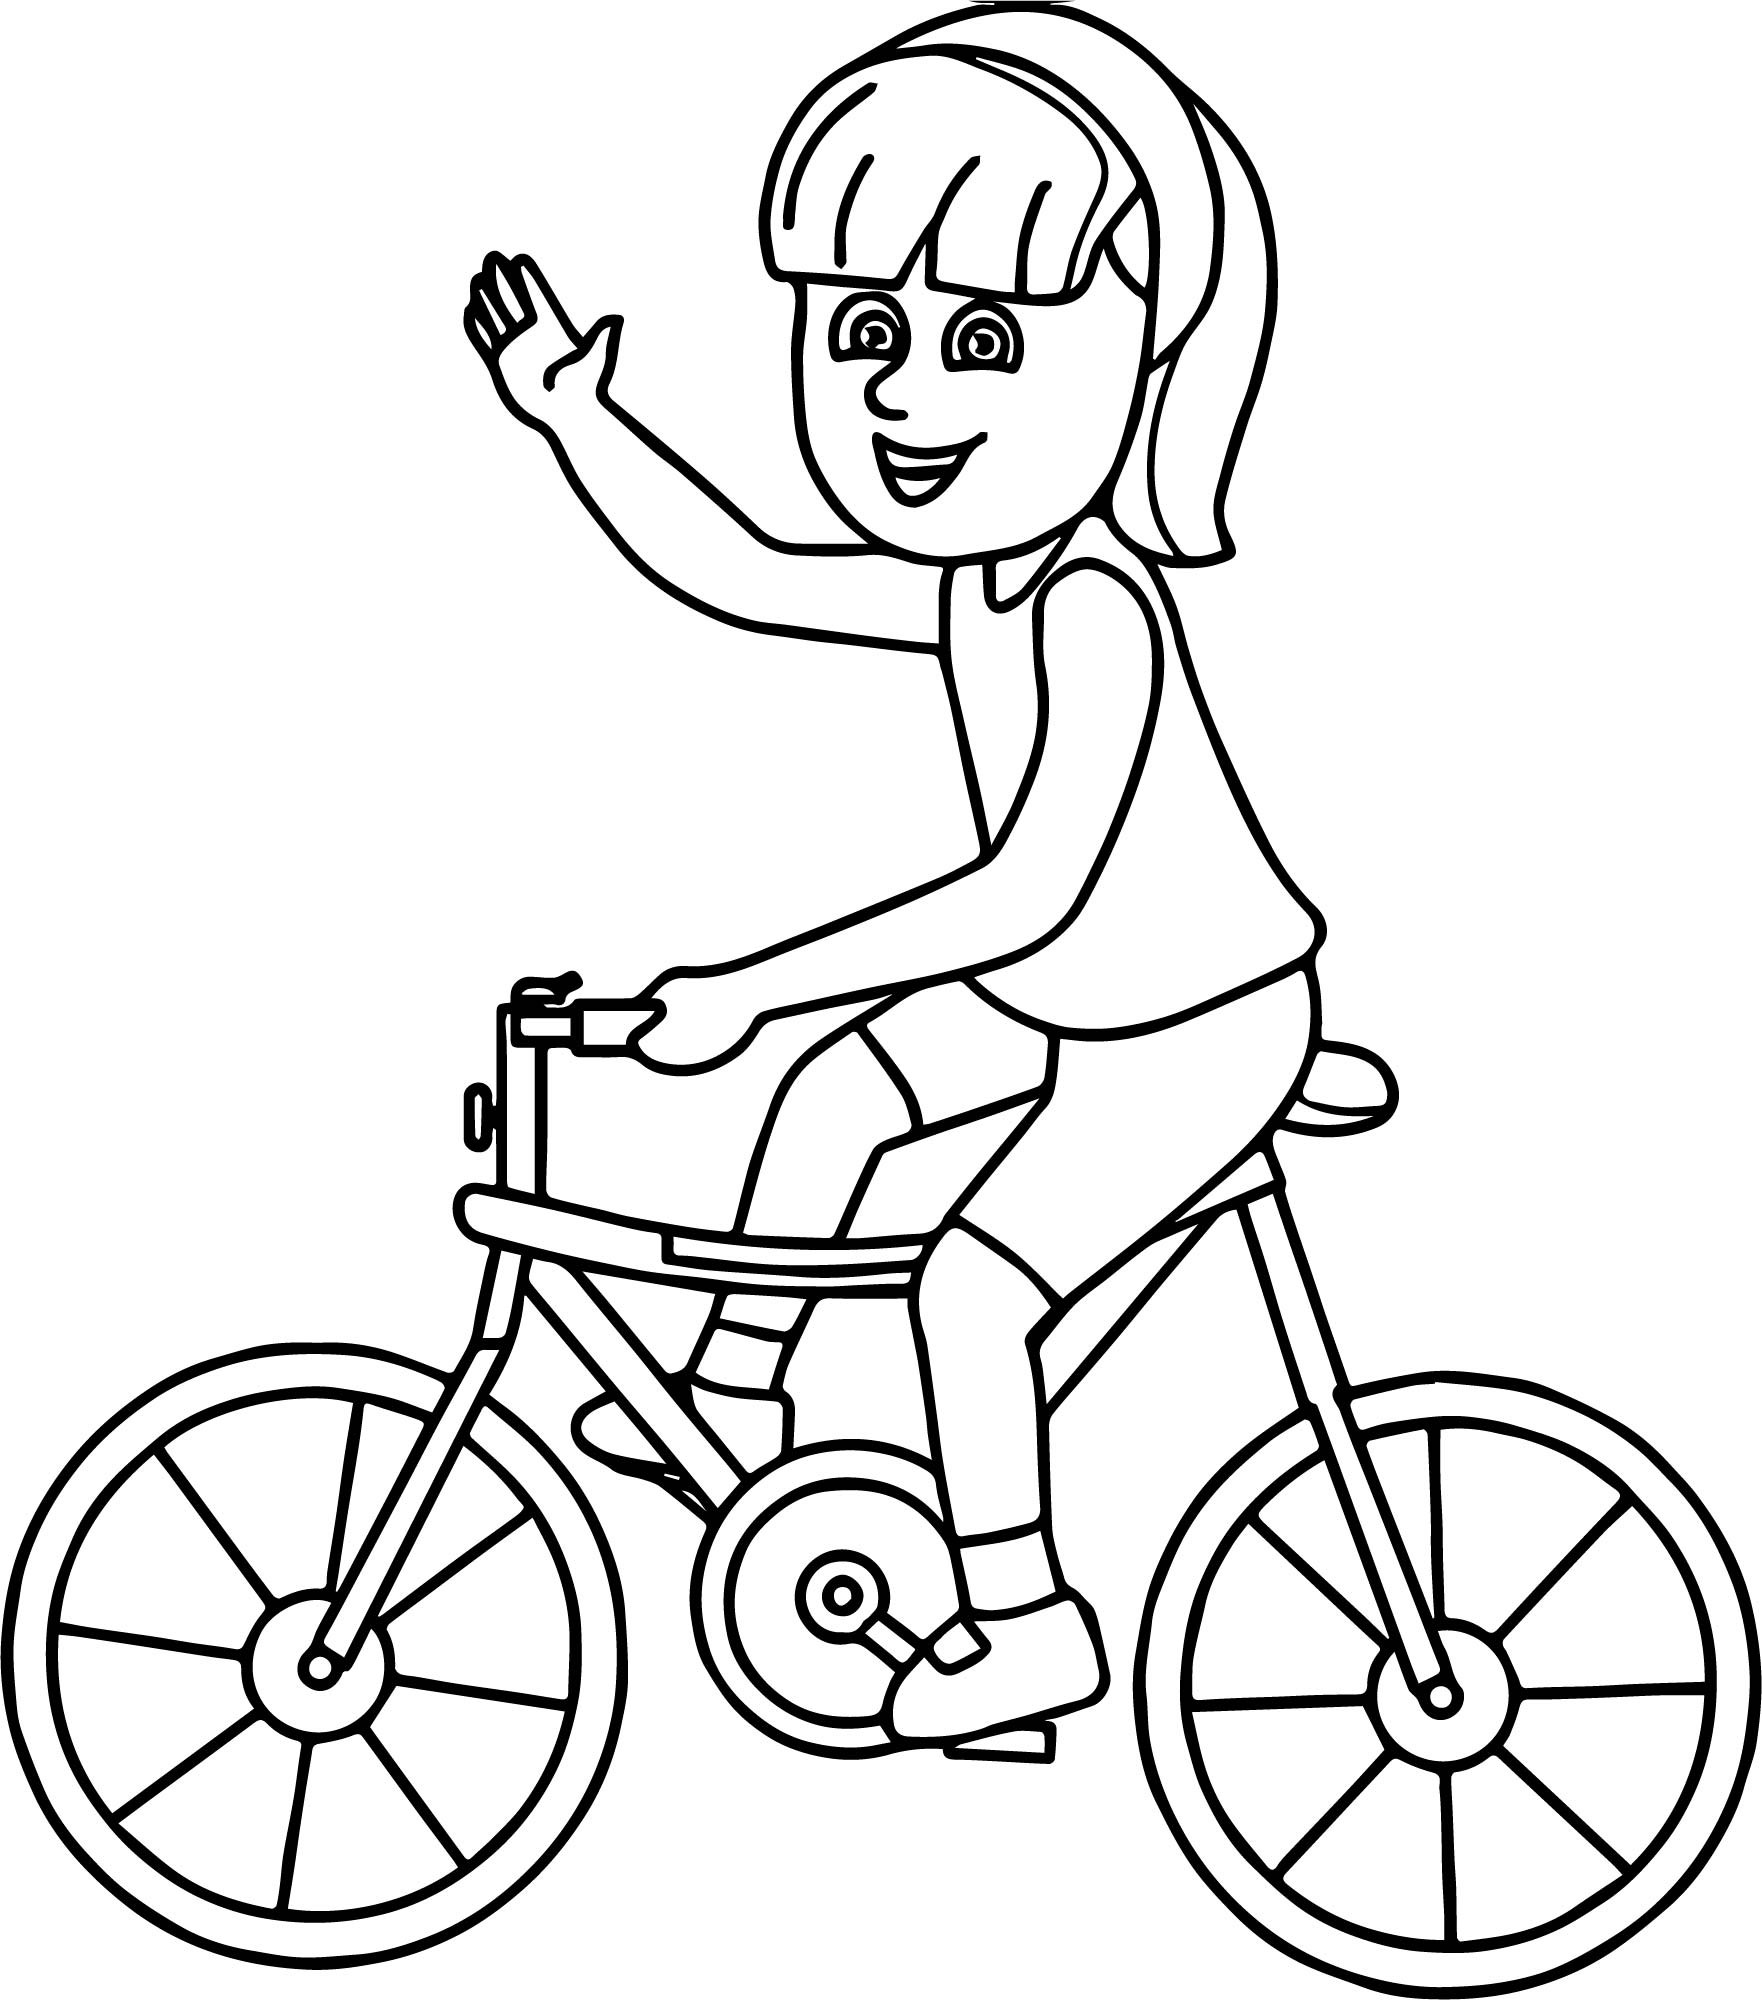 1762x2000 Awesome Collection Of Motorcycle Helmet Coloring Pages For Epic